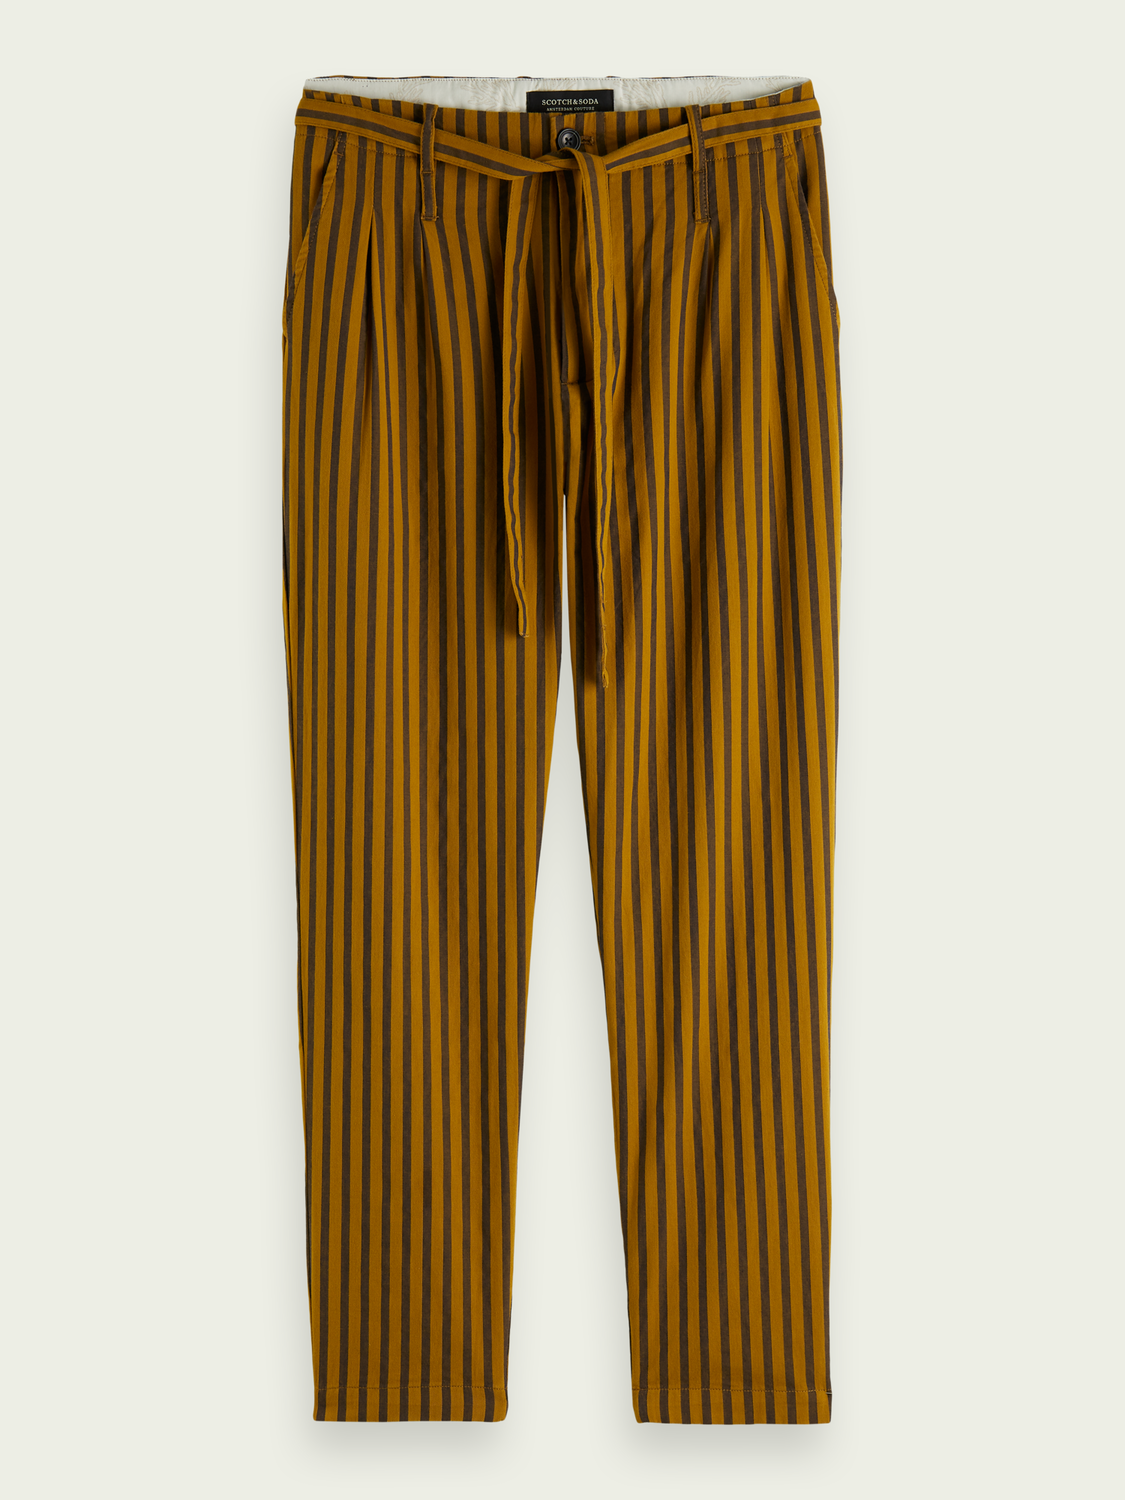 Men Striped cotton schinos with folded pleats